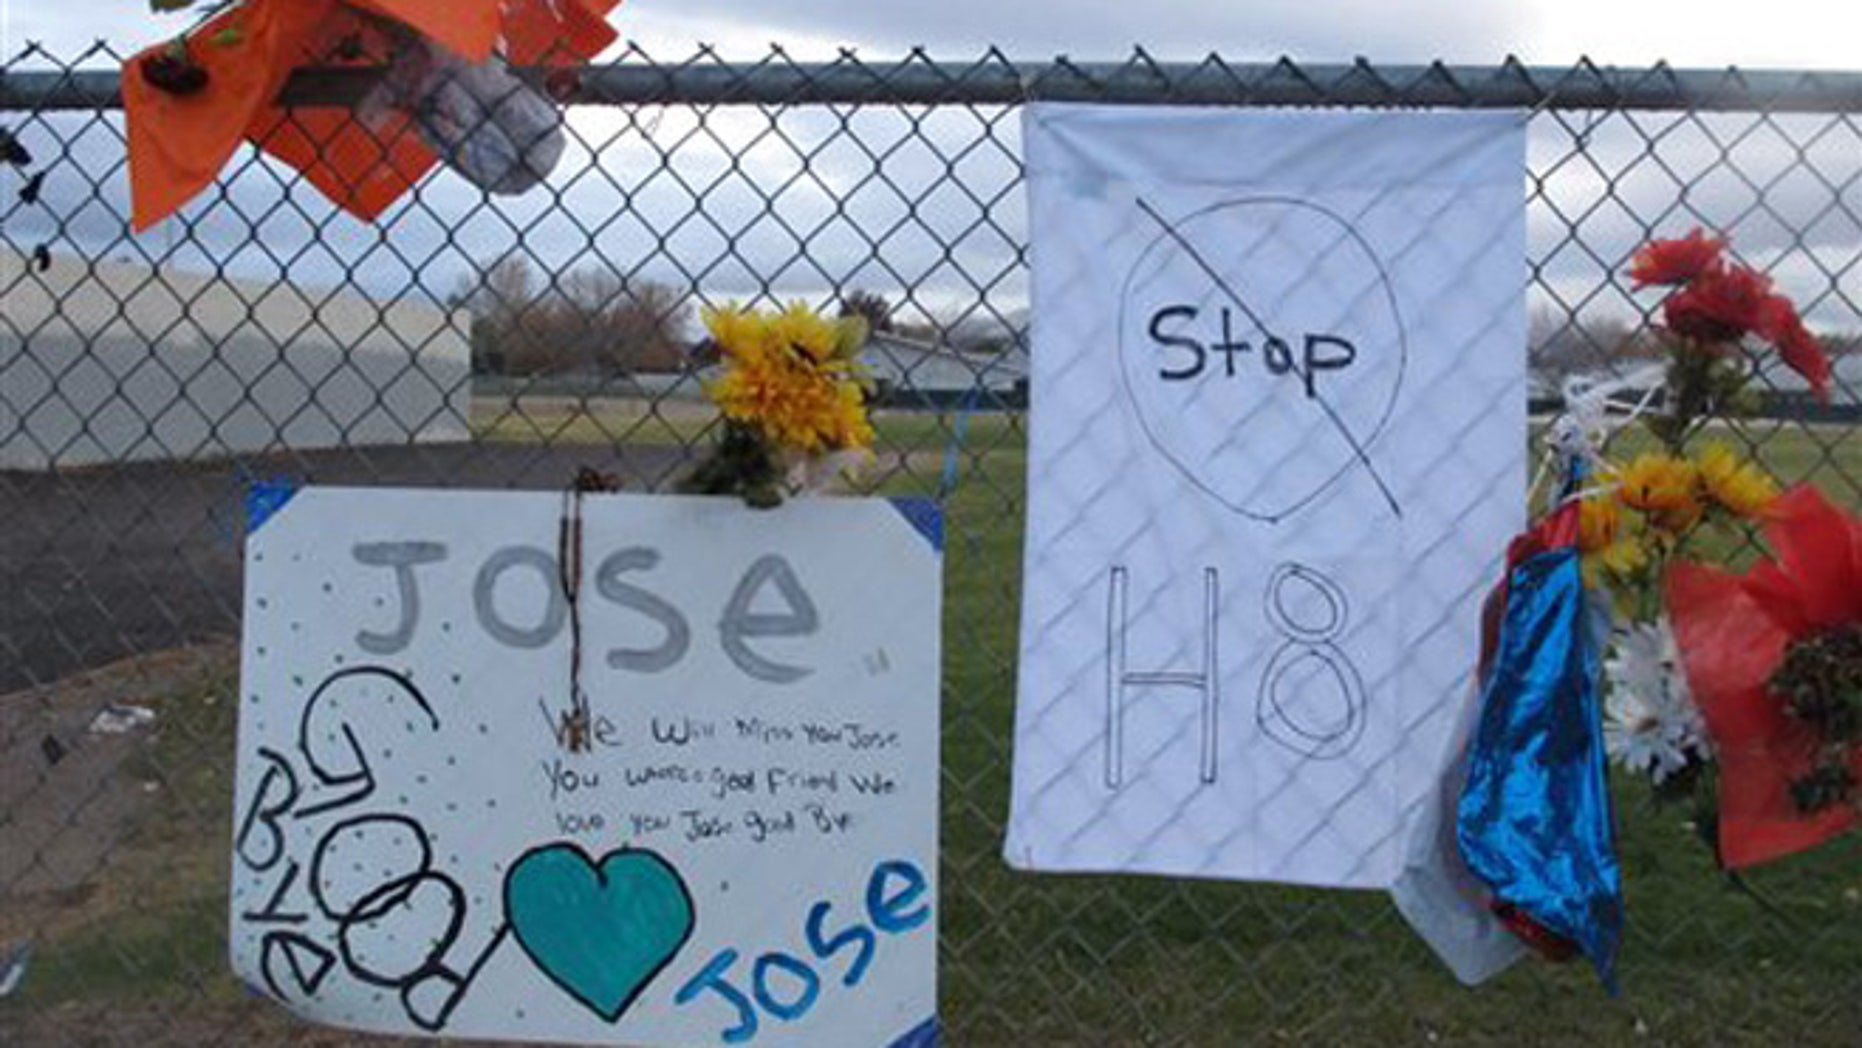 Friends have added a message to Jose Reyes and a small wooden cross at a memorial pictured Monday, Oct. 28, 2013, outside Sparks Middle School, where the seventh-grader fatally shot a teacher and wounded two 12-year-old classmates before killing himself in the school yard a week ago. Students returned to classes Monday for the first time since the Oct. 21 shooting. (AP Photo/By Scott Sonner)